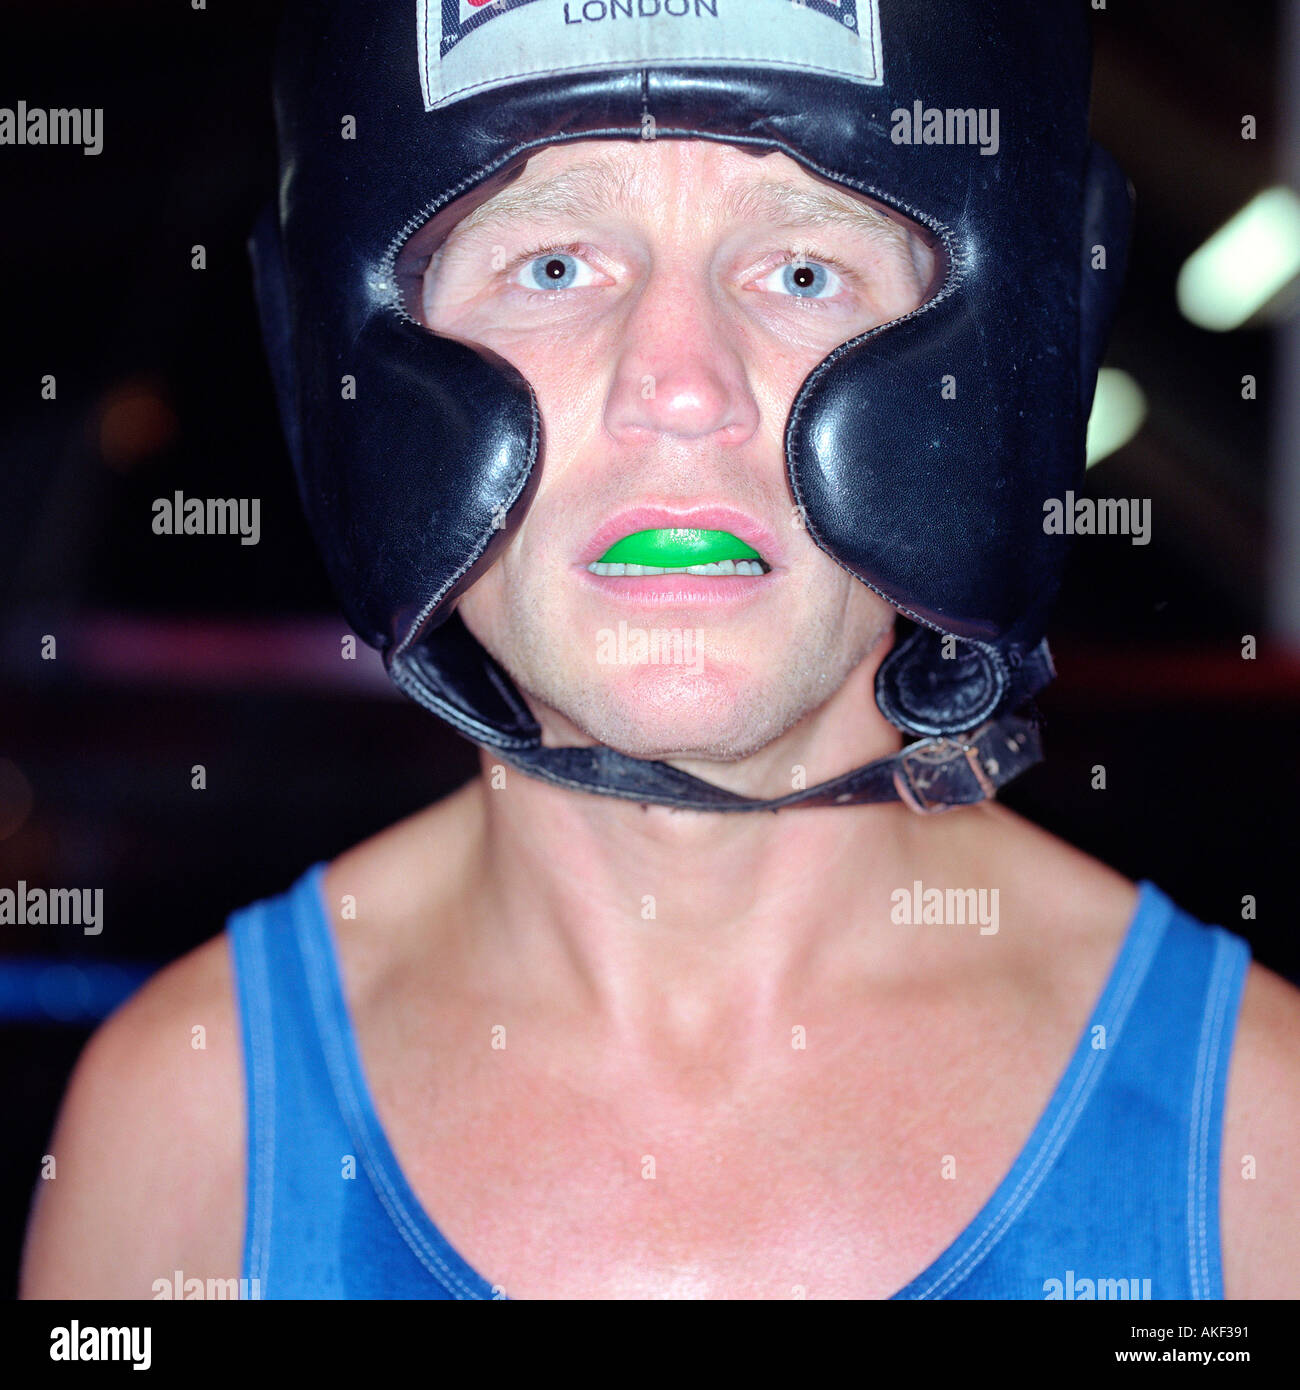 Boxer with gum shield - Stock Image